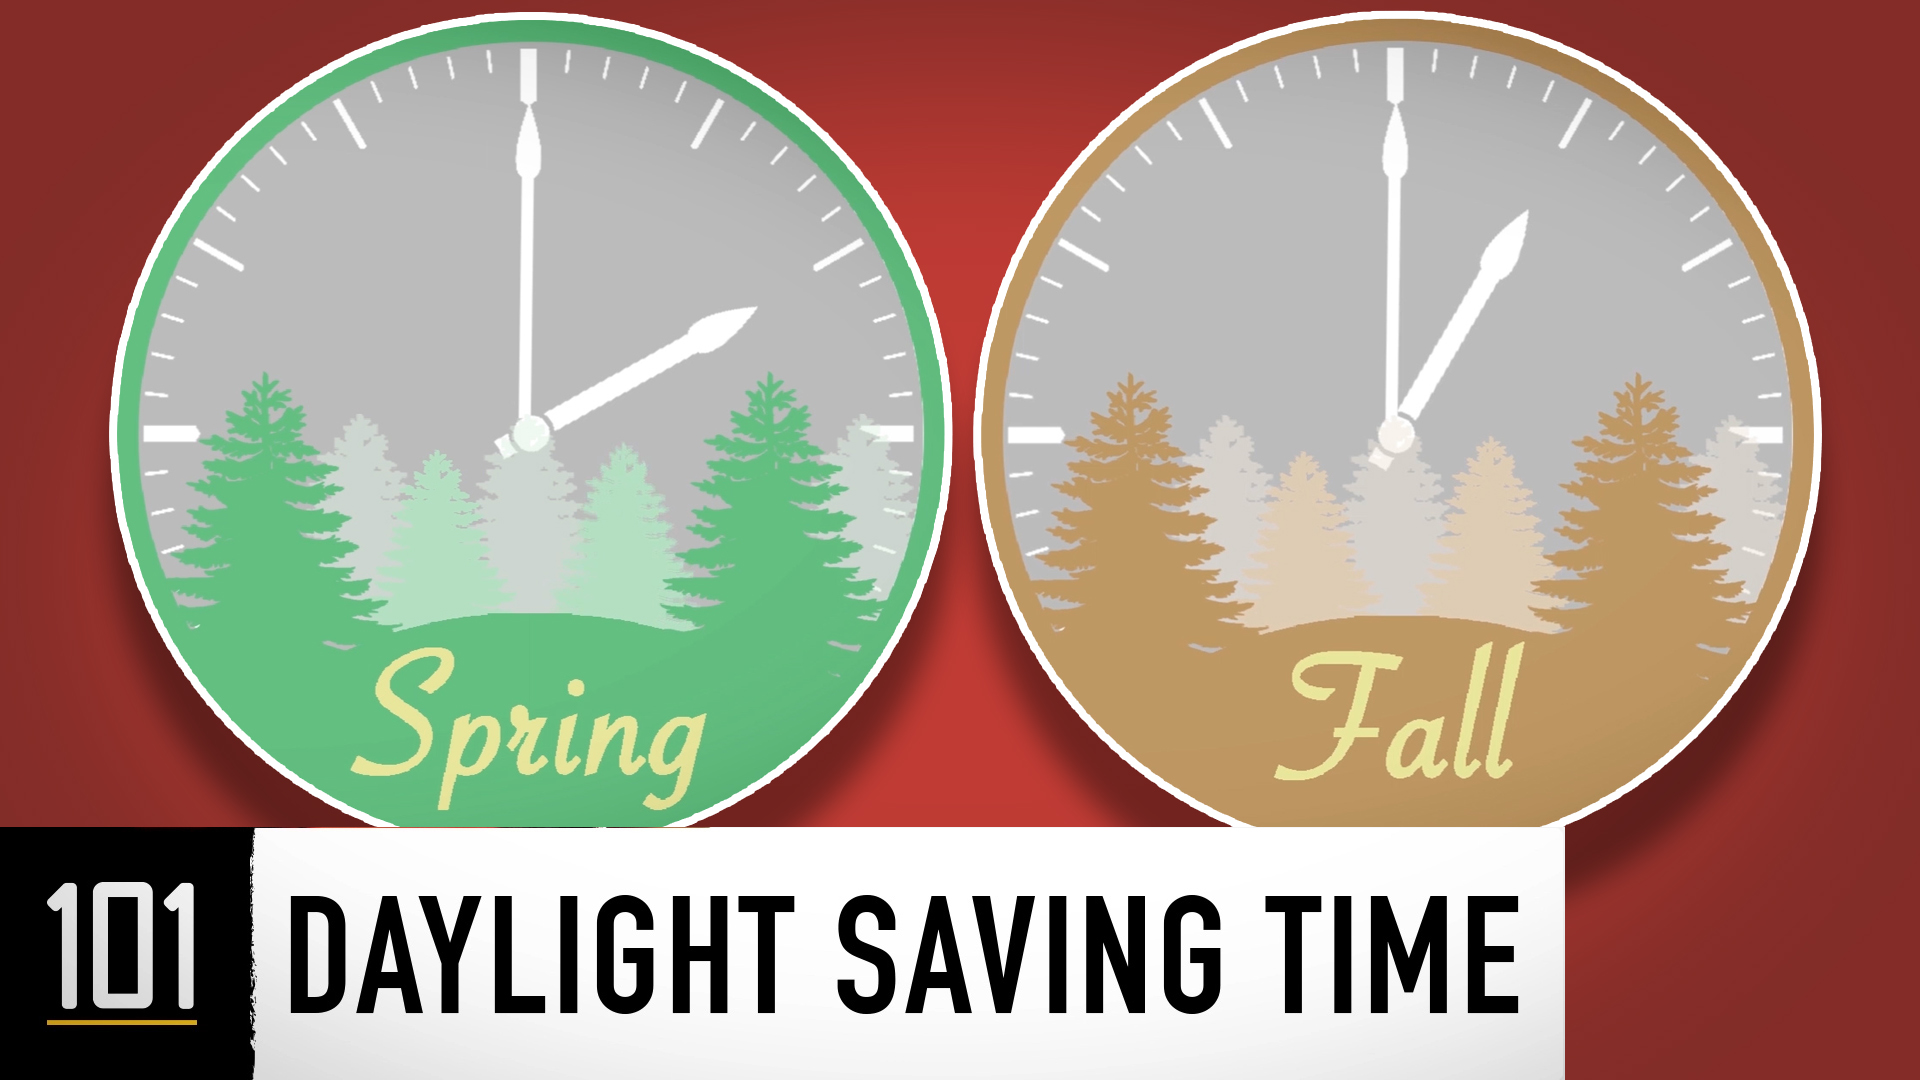 Daylight savings date